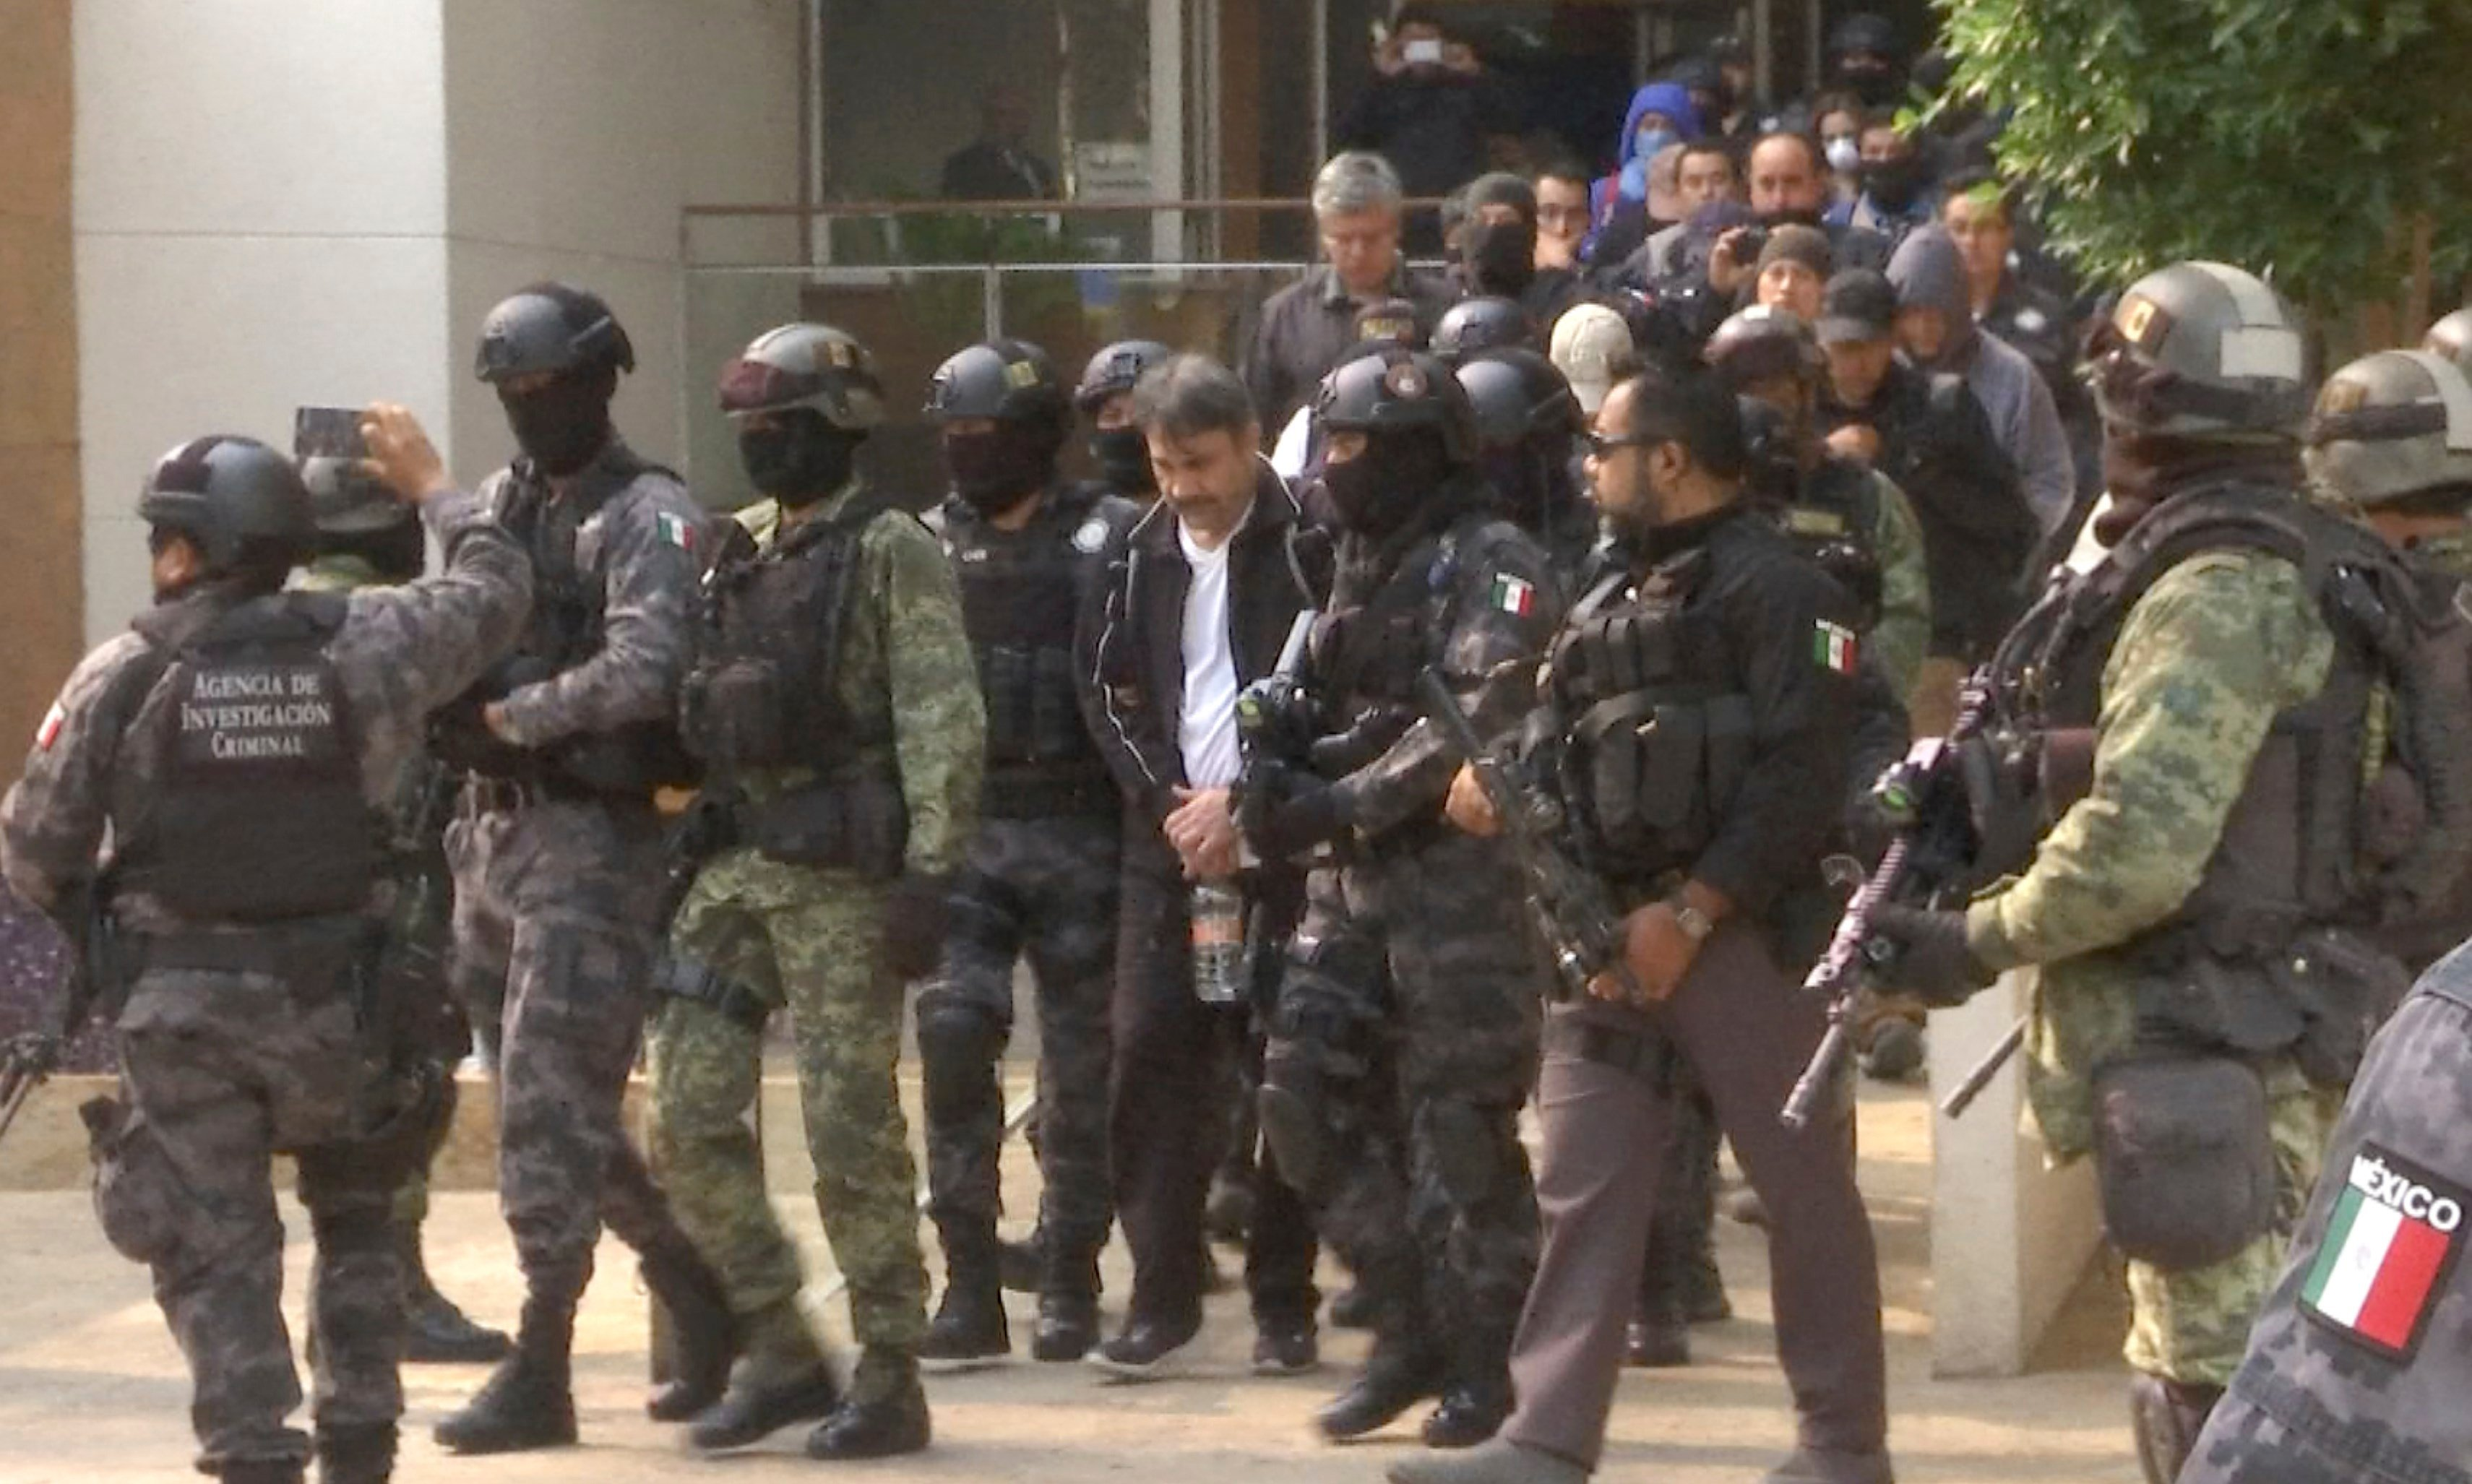 """This frame grab from video shows Damaso Lopez, known by the nickname """"El Licenciado,"""" escorted by police after his capture at an upscale apartment building on a major boulevard in Mexico City, Tuesday, May 2, 2017.  (AP Photo/Jorge Barrera, APTN)"""